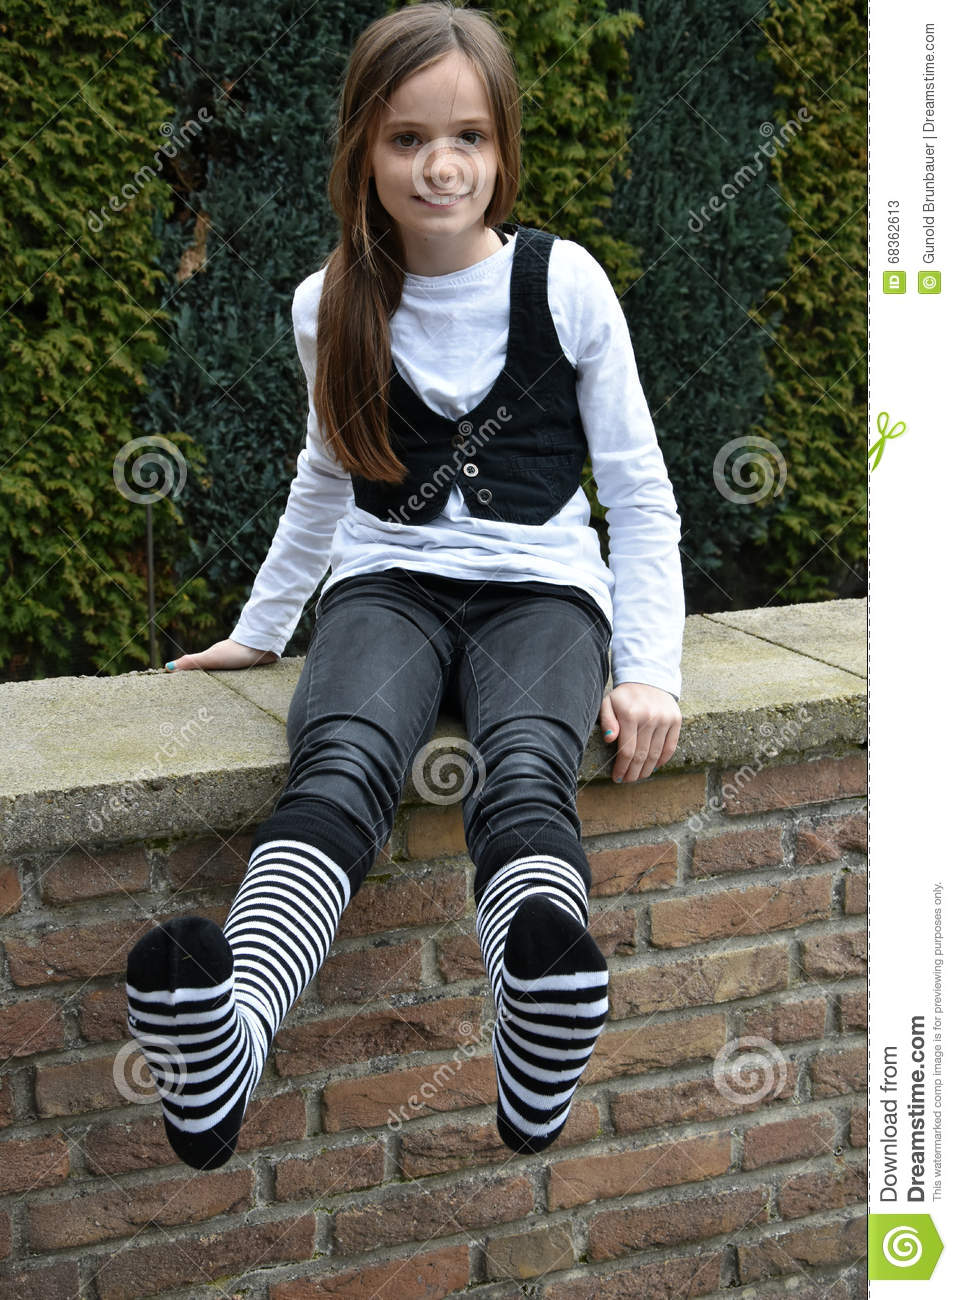 Teeny with striped socks